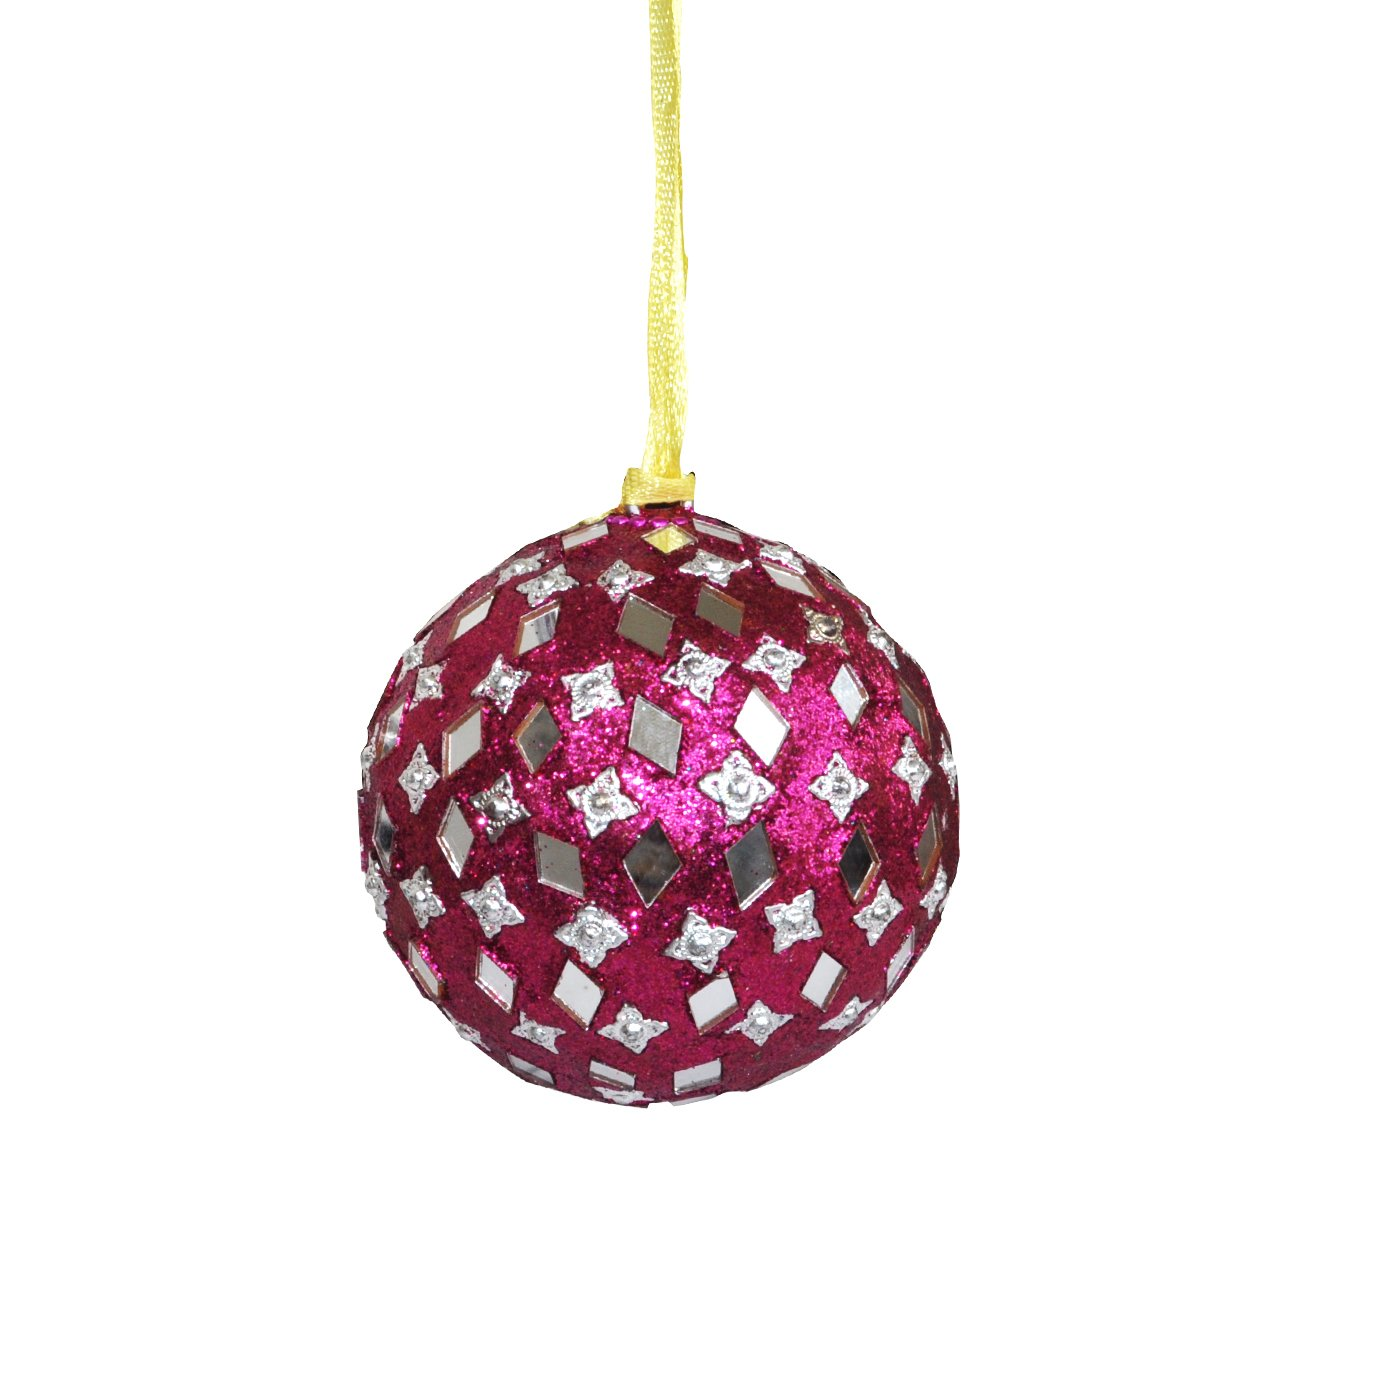 Big Sale Offer Christmas & New Year - Dungri India Craft Decorative Christmas Ornament - Holiday Decorations Hanging Christmas Tree Ornaments Xmas Gift Pink Colour